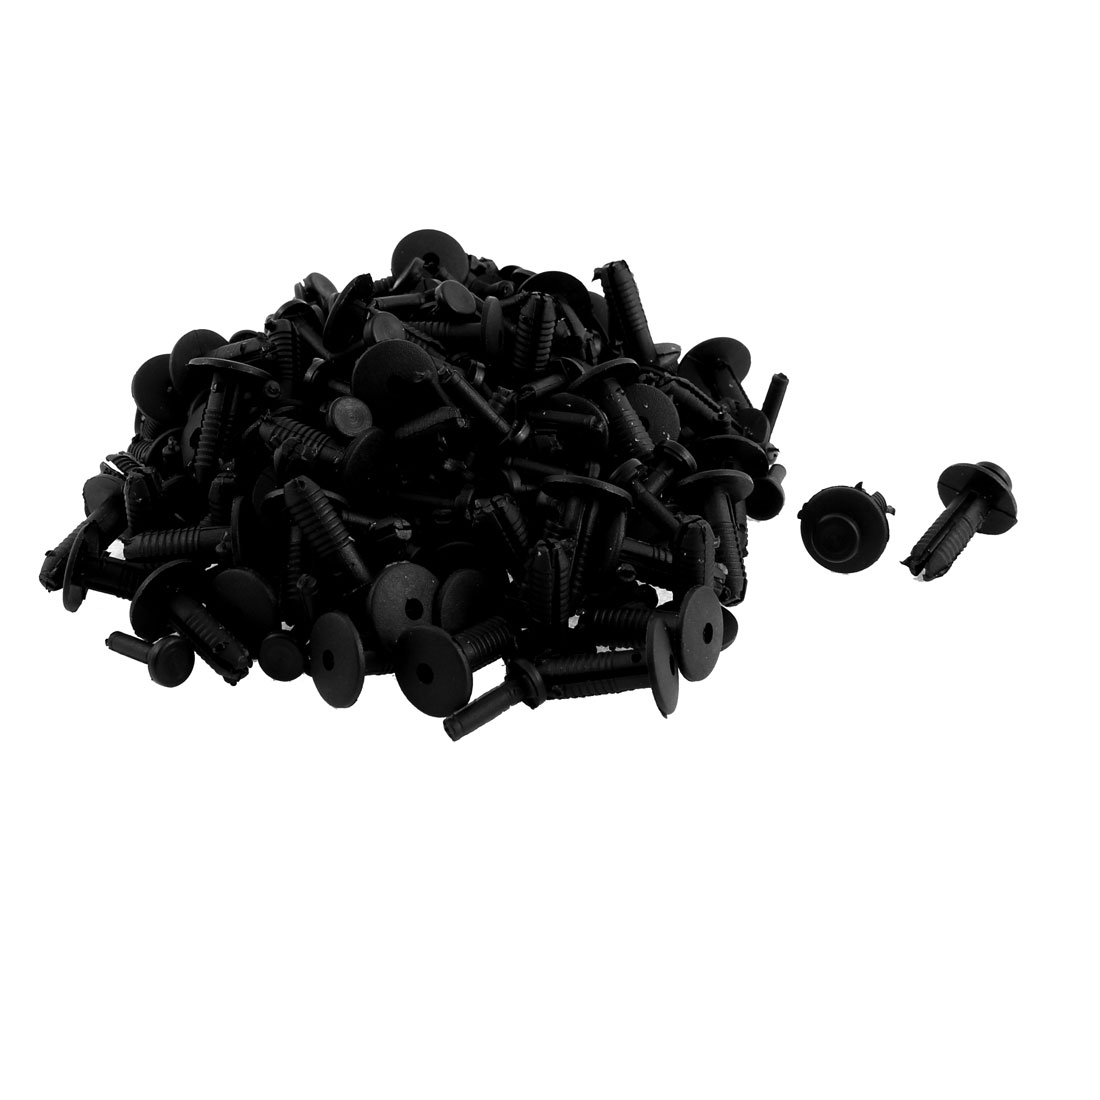 Car Door Fender Black Plastic Rivets Retainer Push Clips Fateners 100pcs